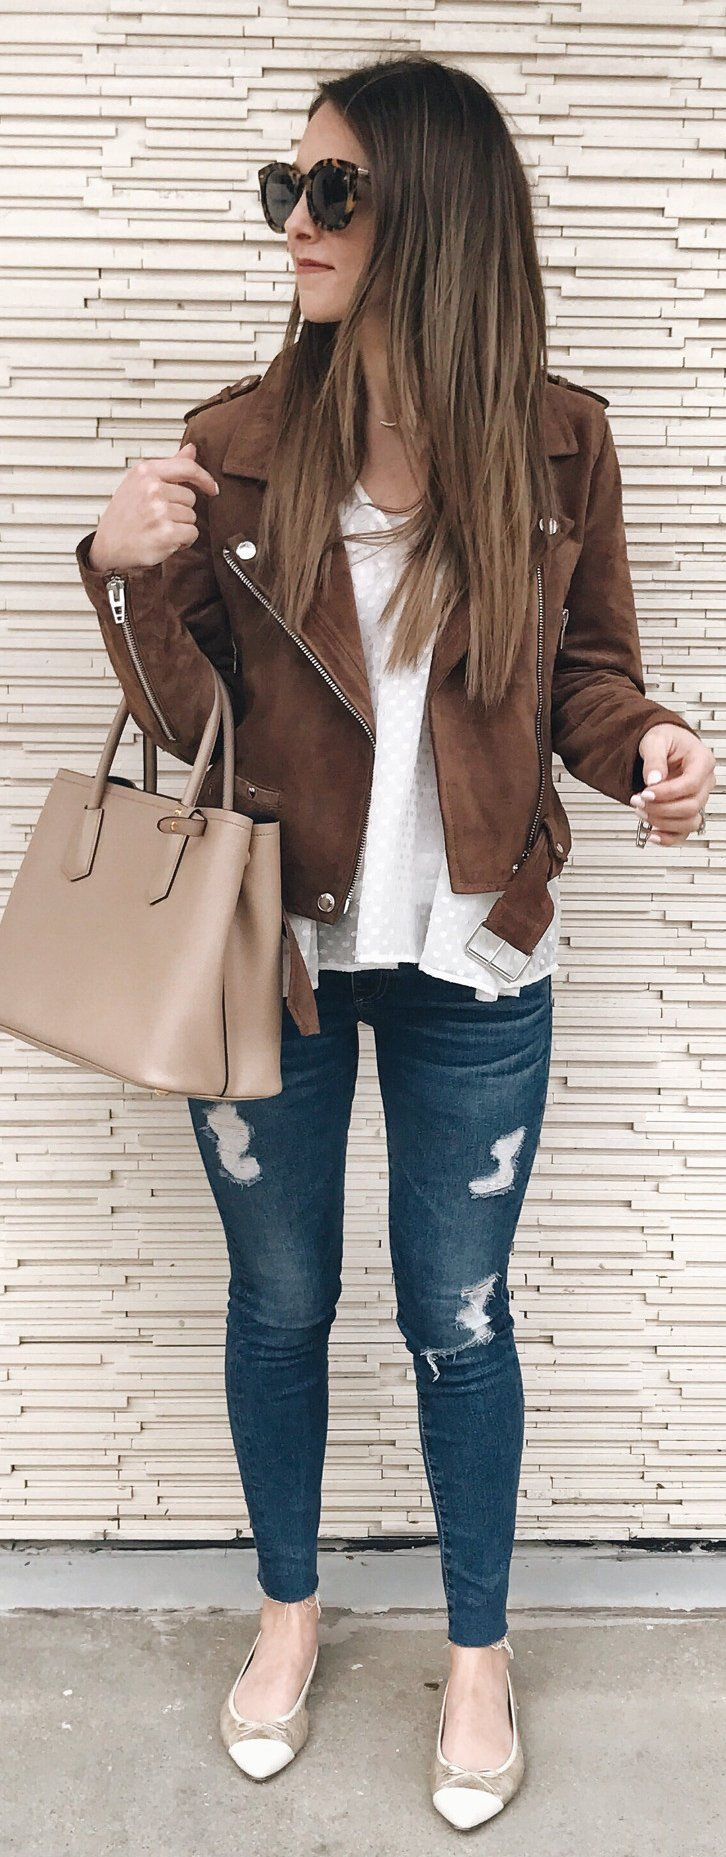 Brown Suede Jacket / White Tee / Ripped Skinny Jeans / Brown Leather Tote Bag